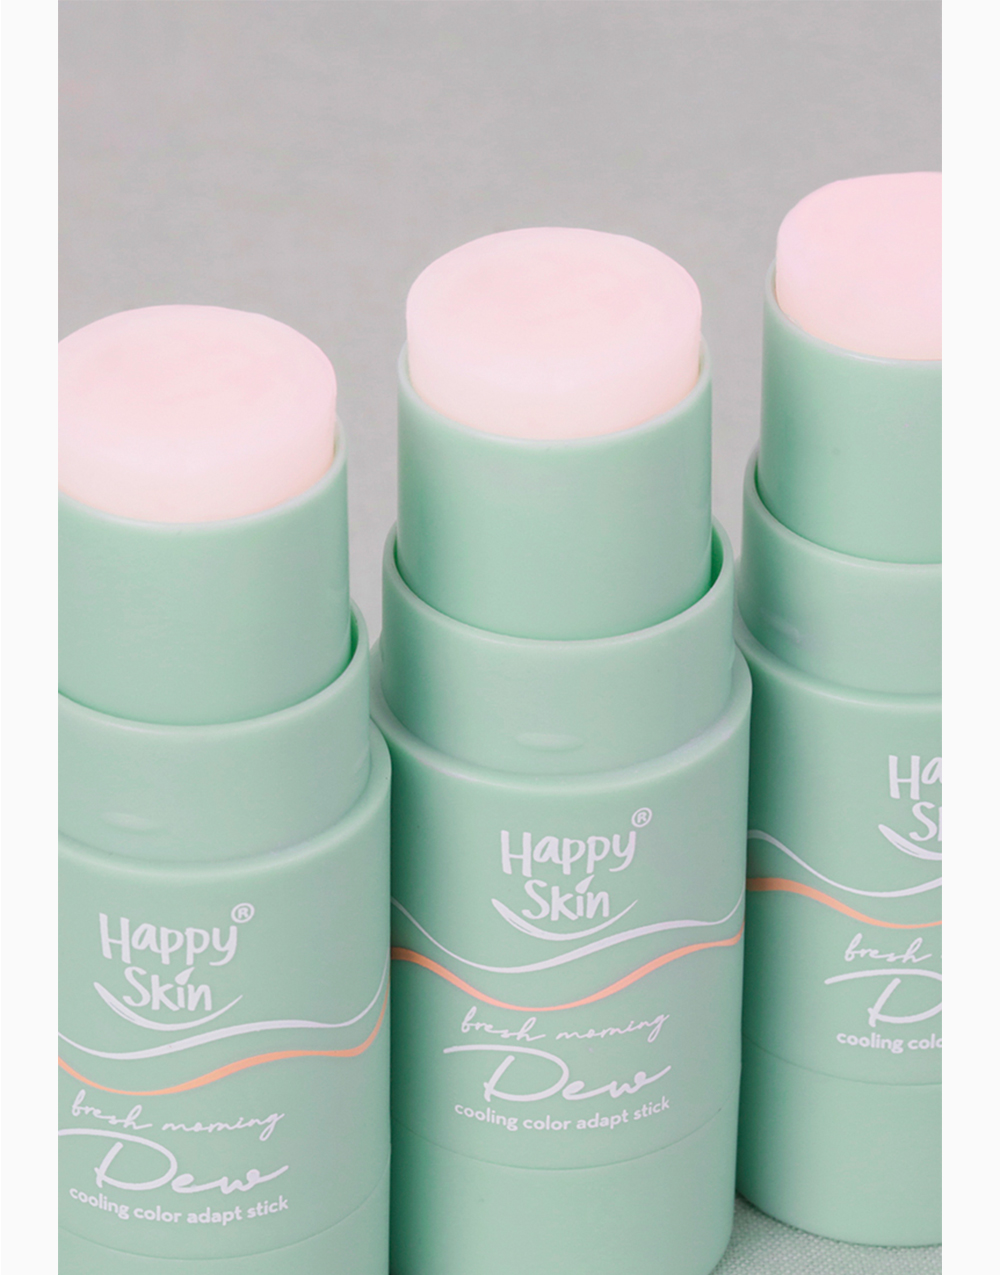 Cooling Color Adapt Stick by Happy Skin